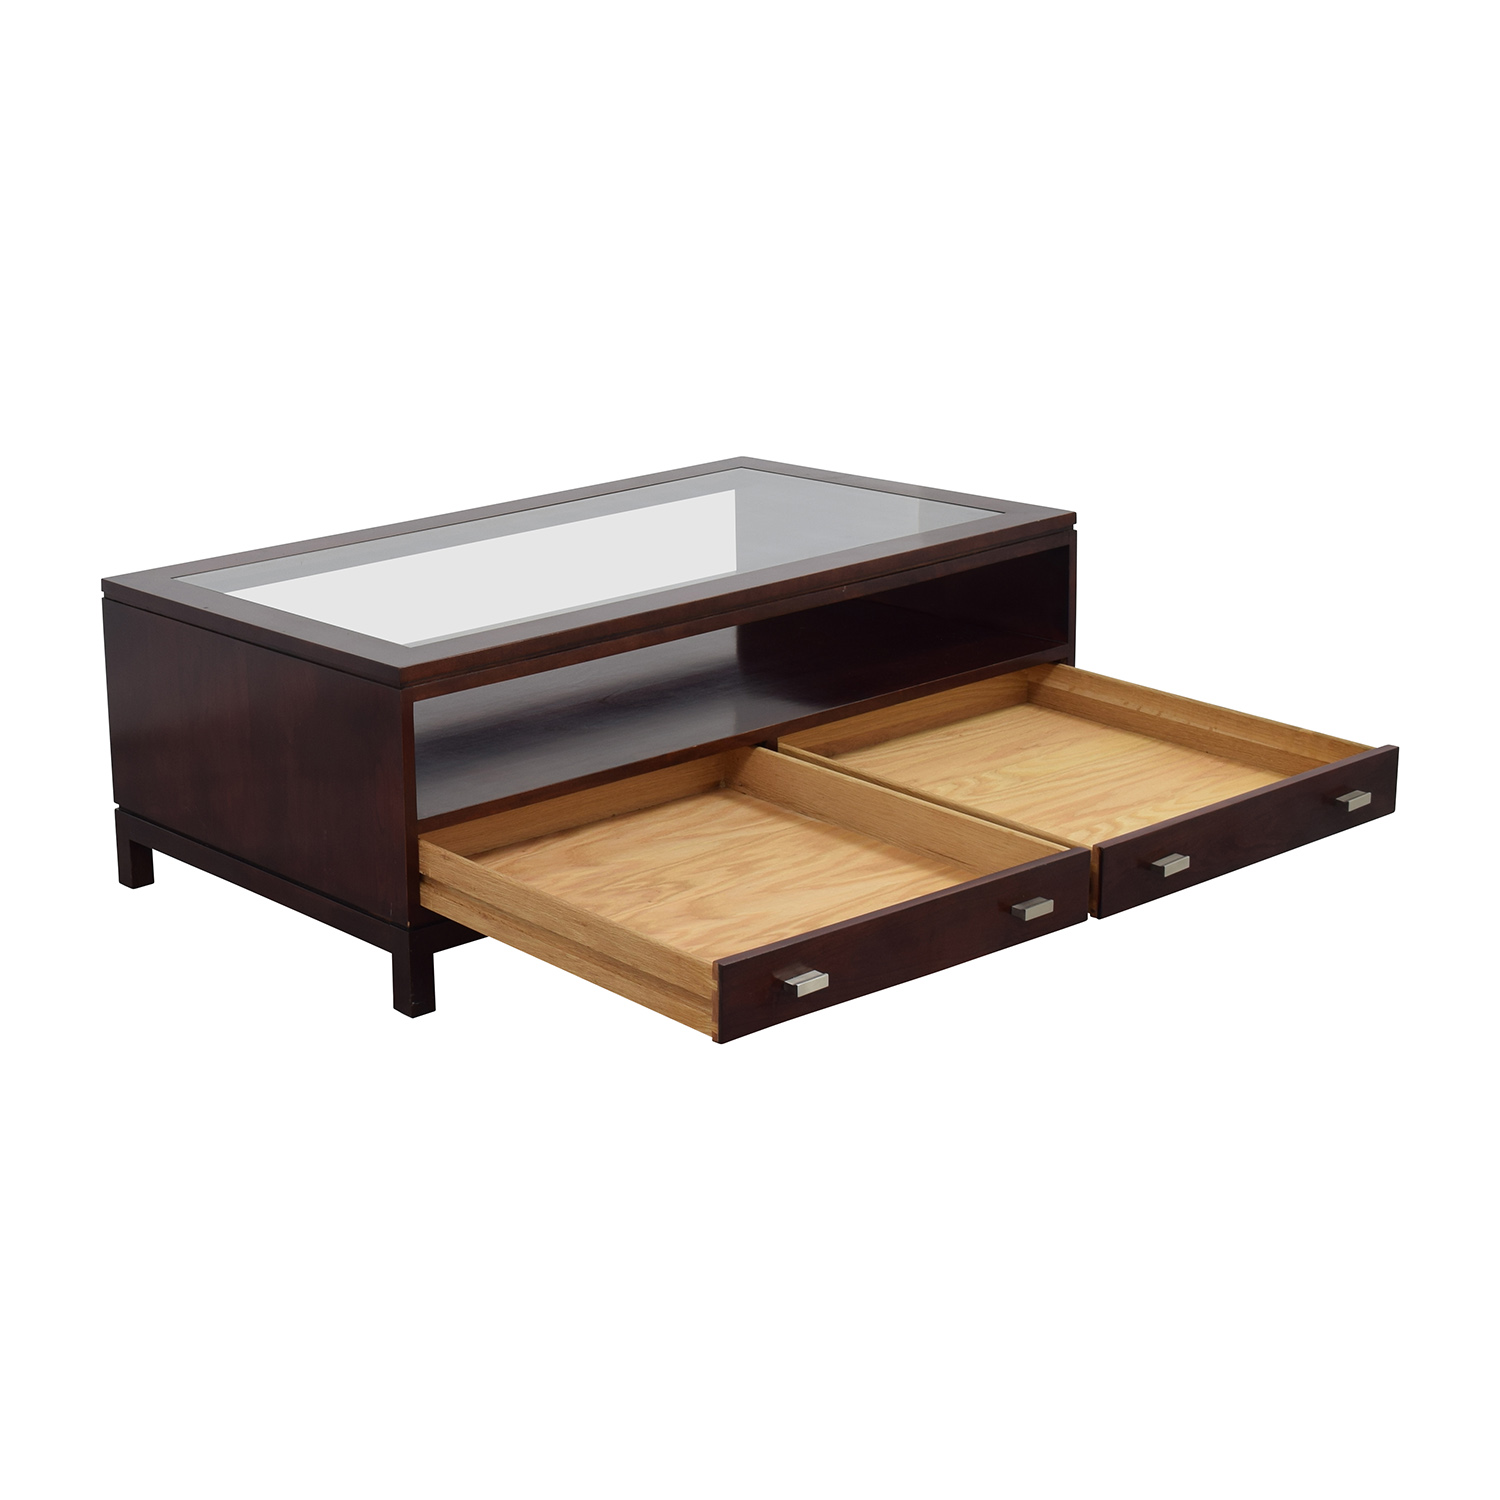 Wood Coffee Table With Storage 84 Off Stickley Wood Coffee Table With Storage Space